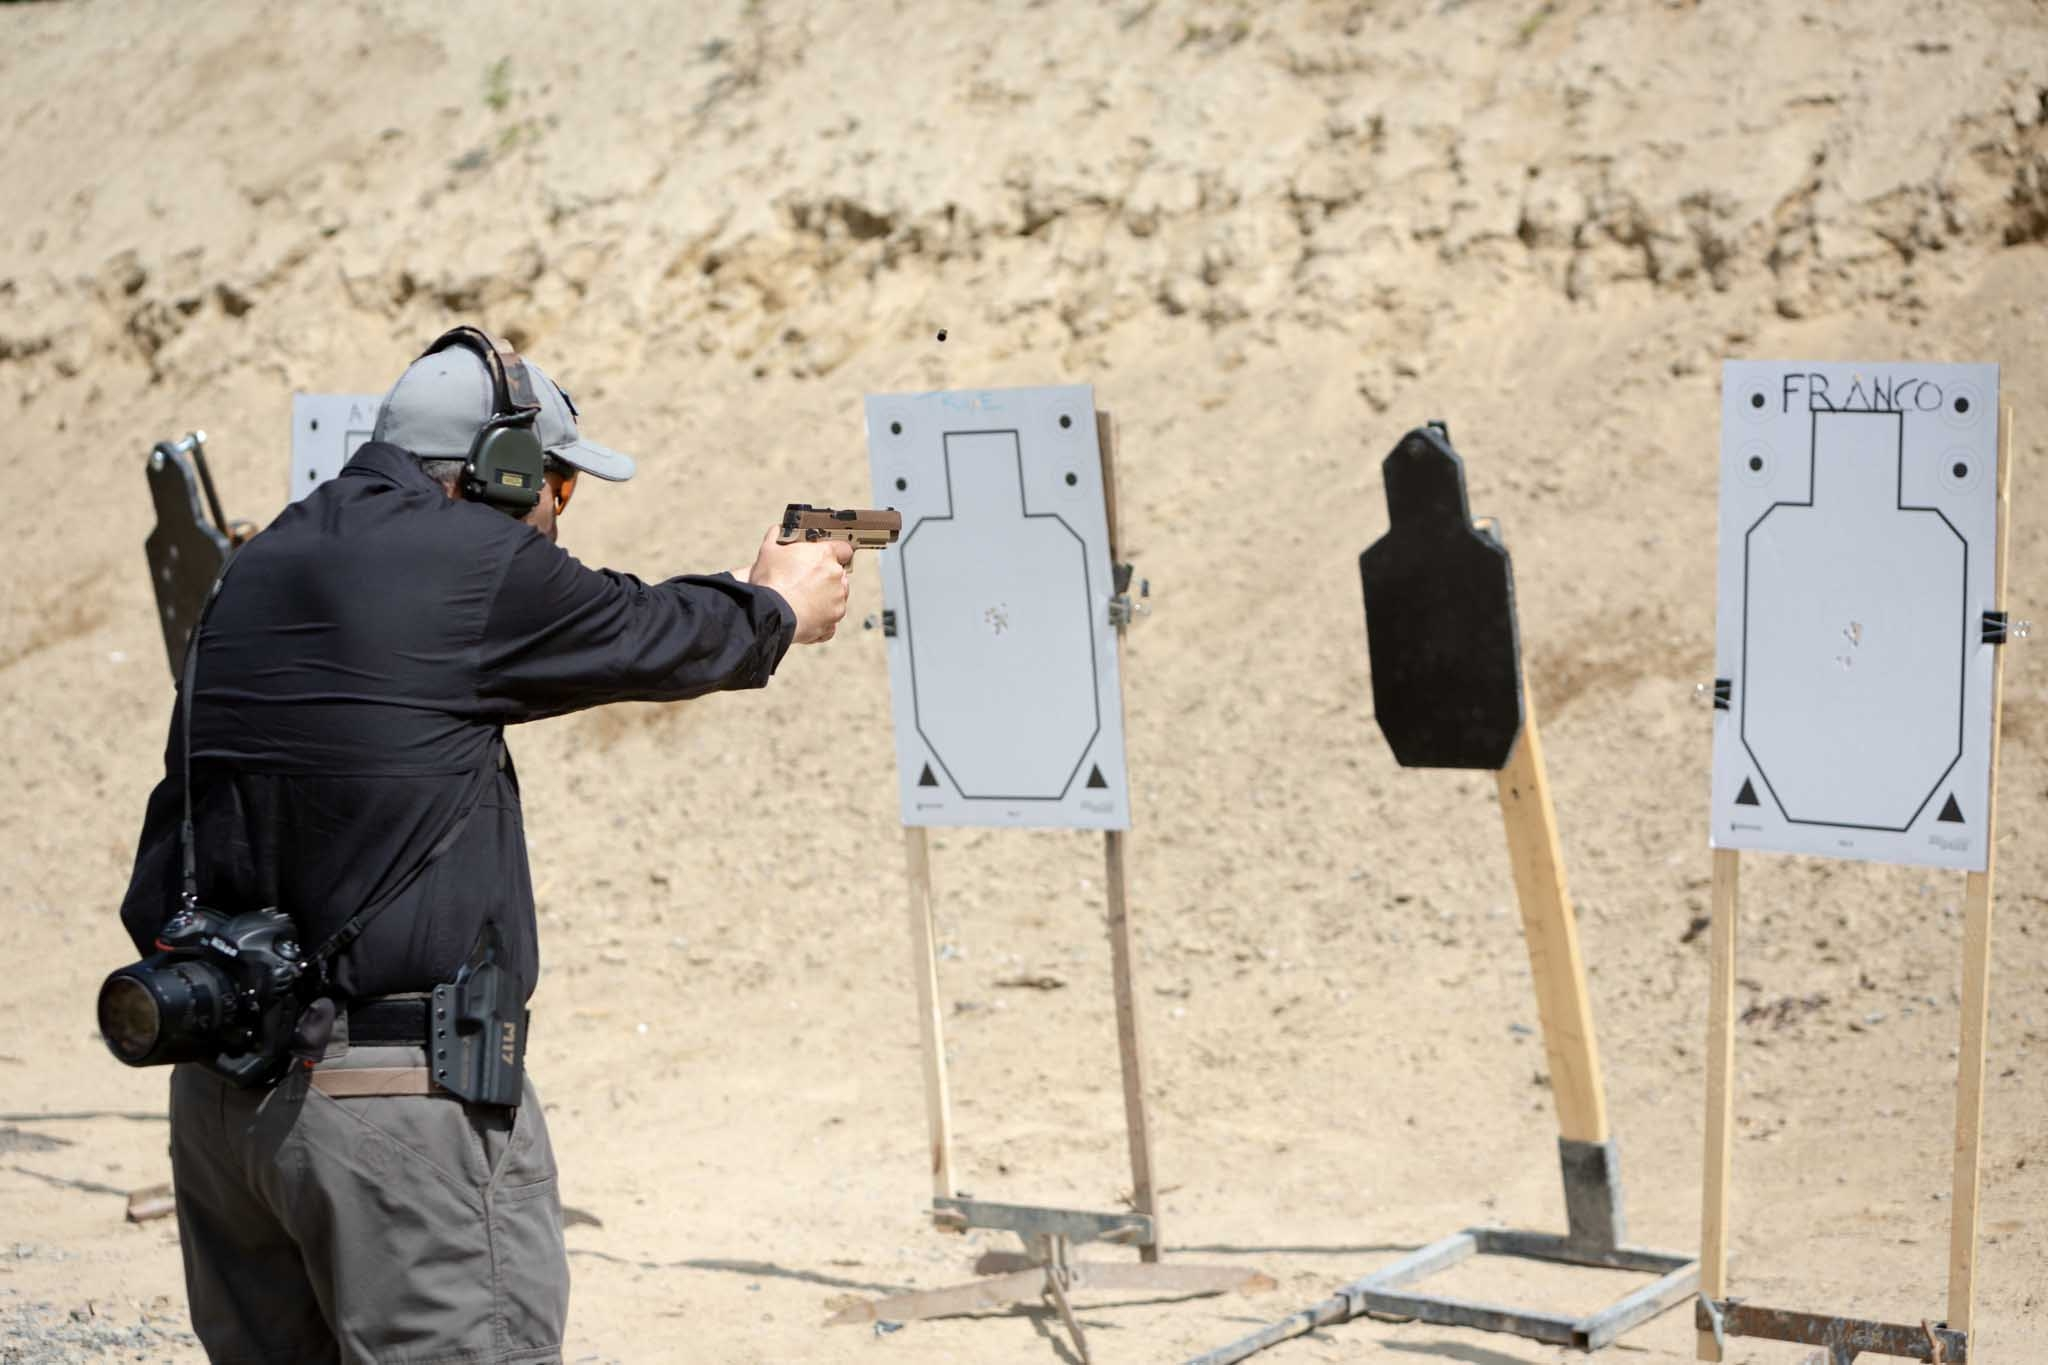 SIG Sauer P320-M17 pistol during the test